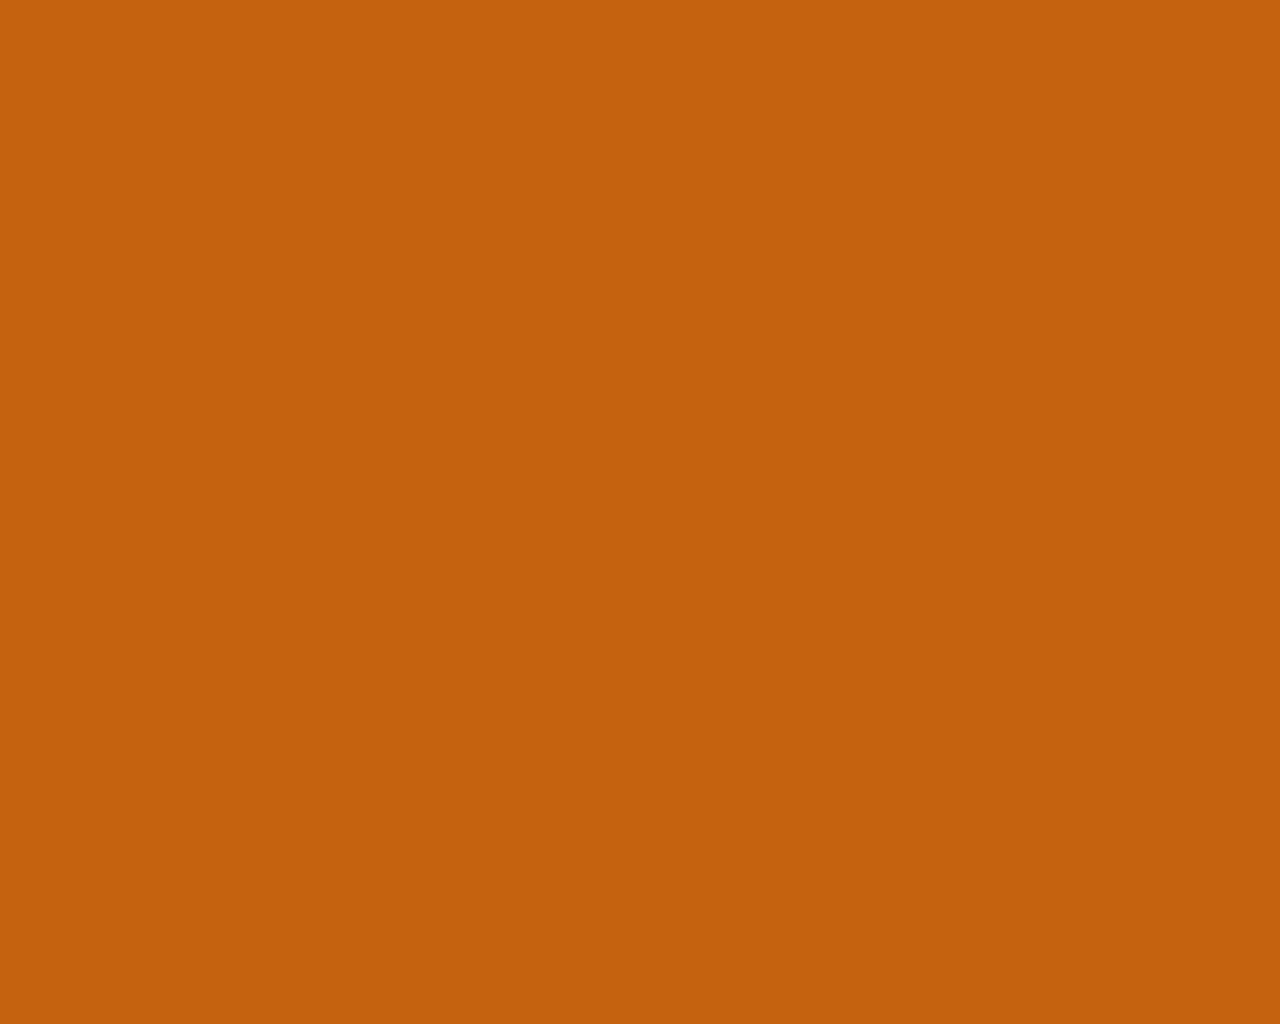 1280x1024 Alloy Orange Solid Color Background